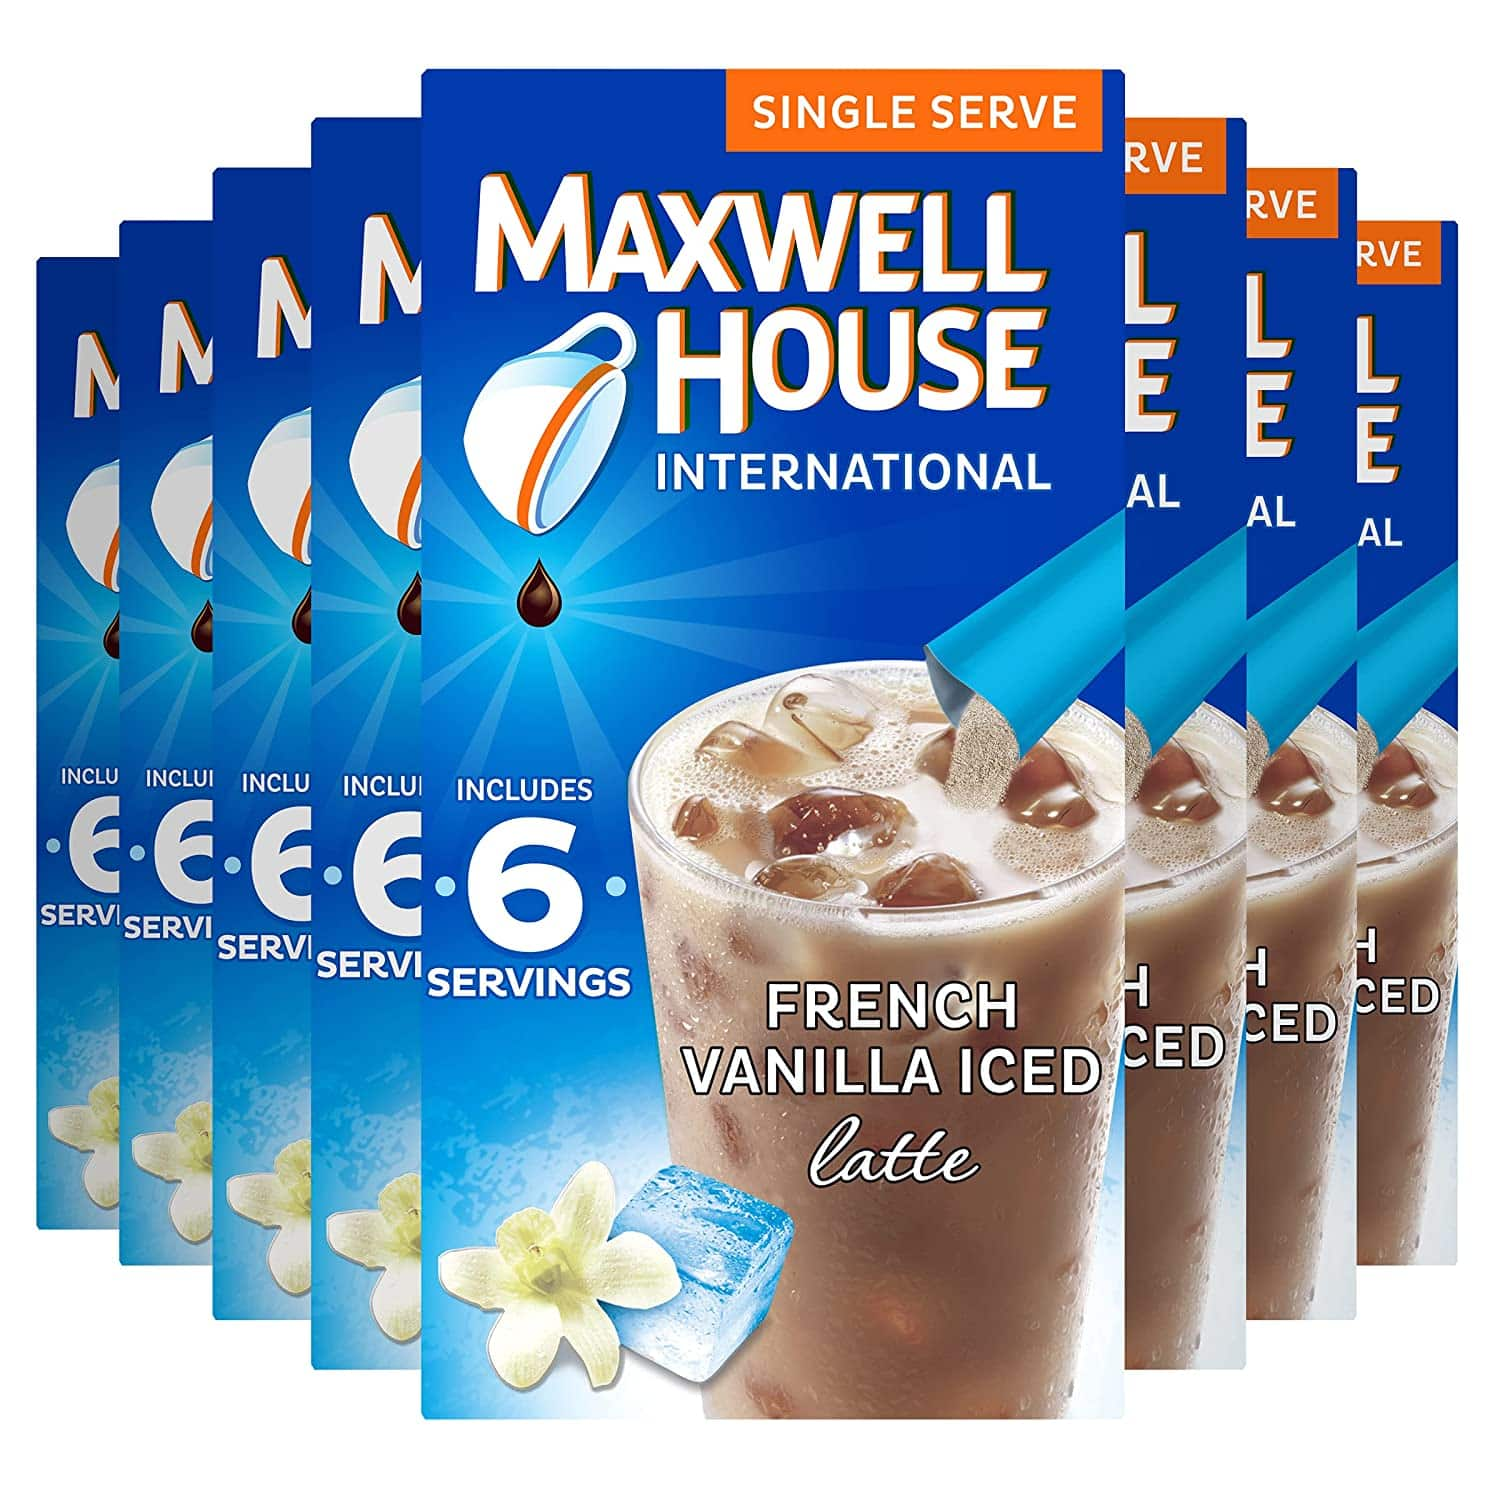 Maxwell House French vanilla instant coffee 48 ct., 8 boxes of 6 - $8.24 with 15% s&s and coupon ymmv